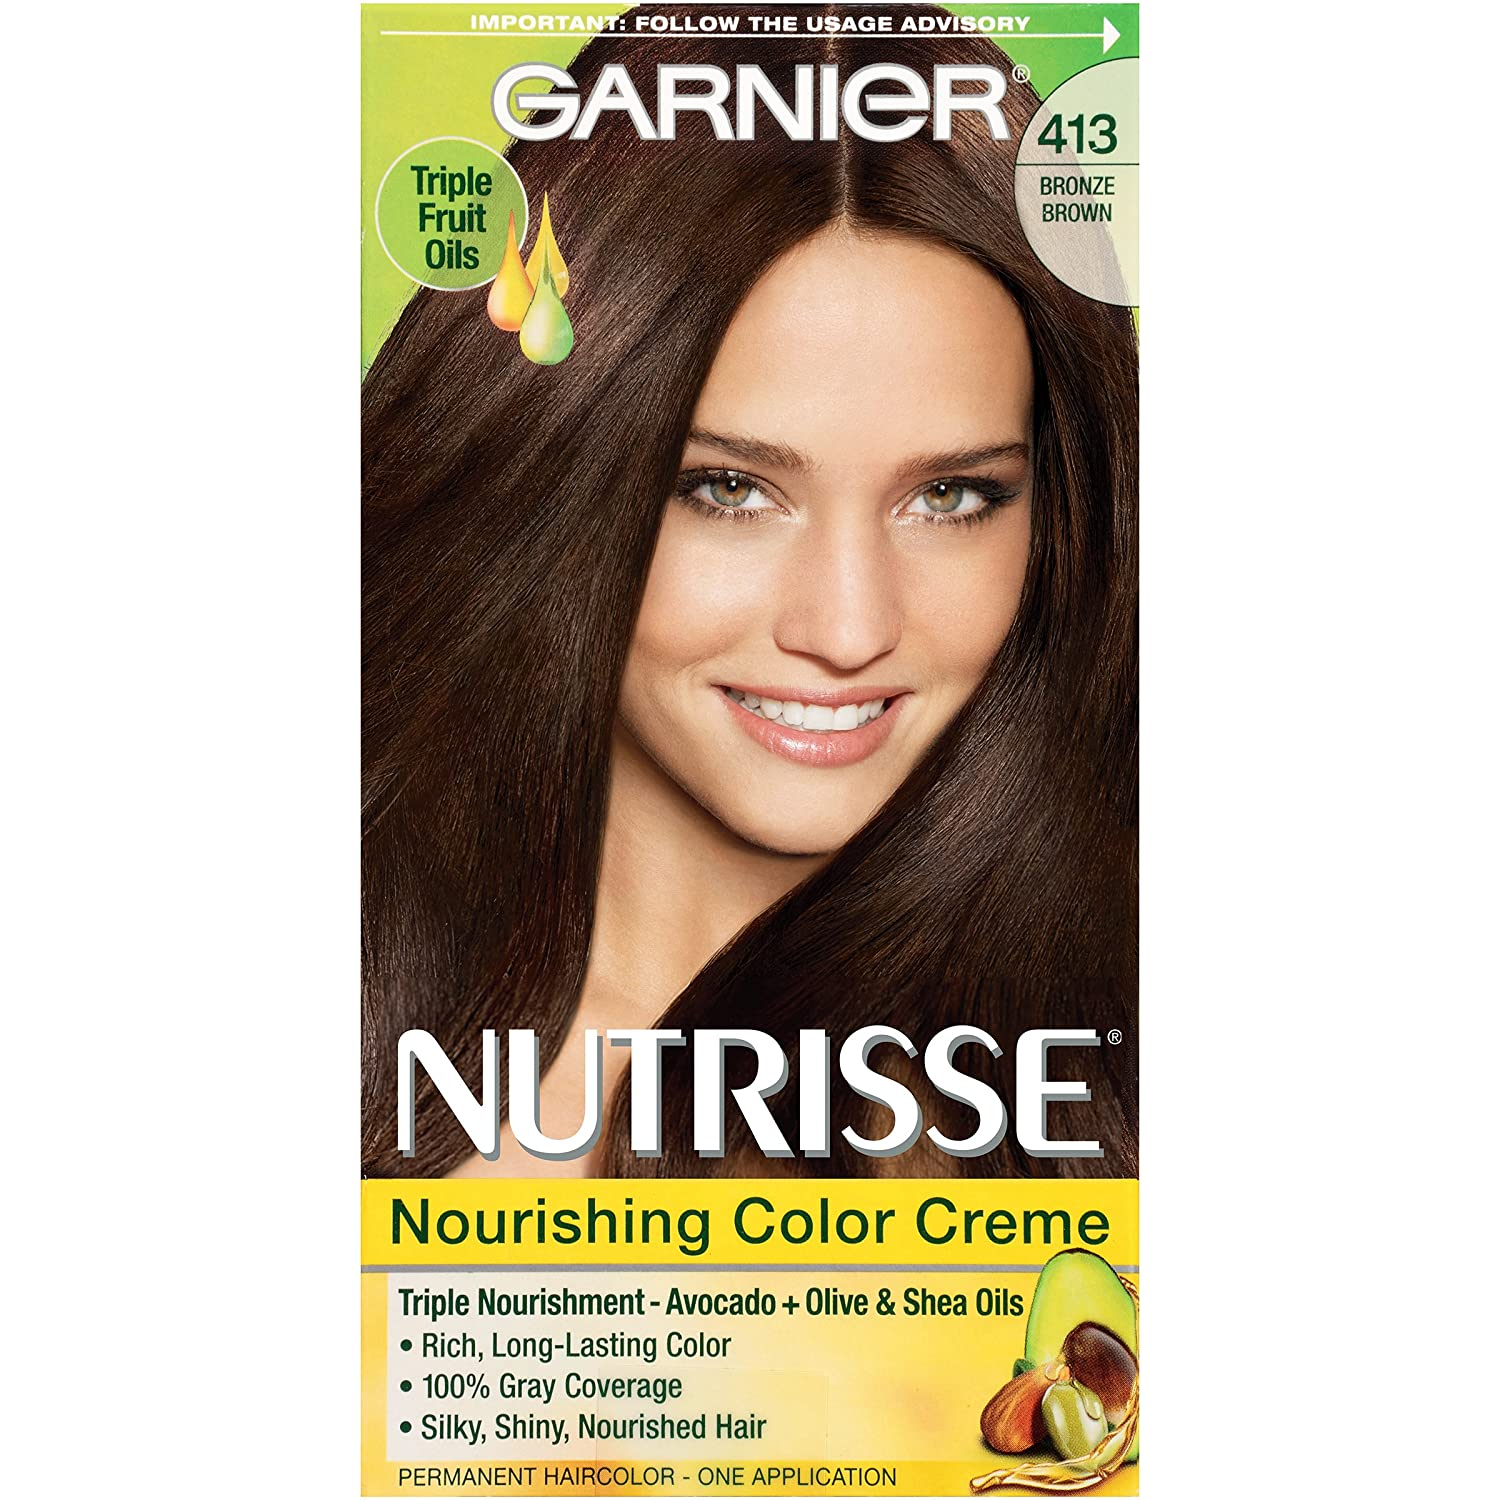 Garnier Nutrisse Nourishing Hair Color Creme, 413 Bronze Brown ...